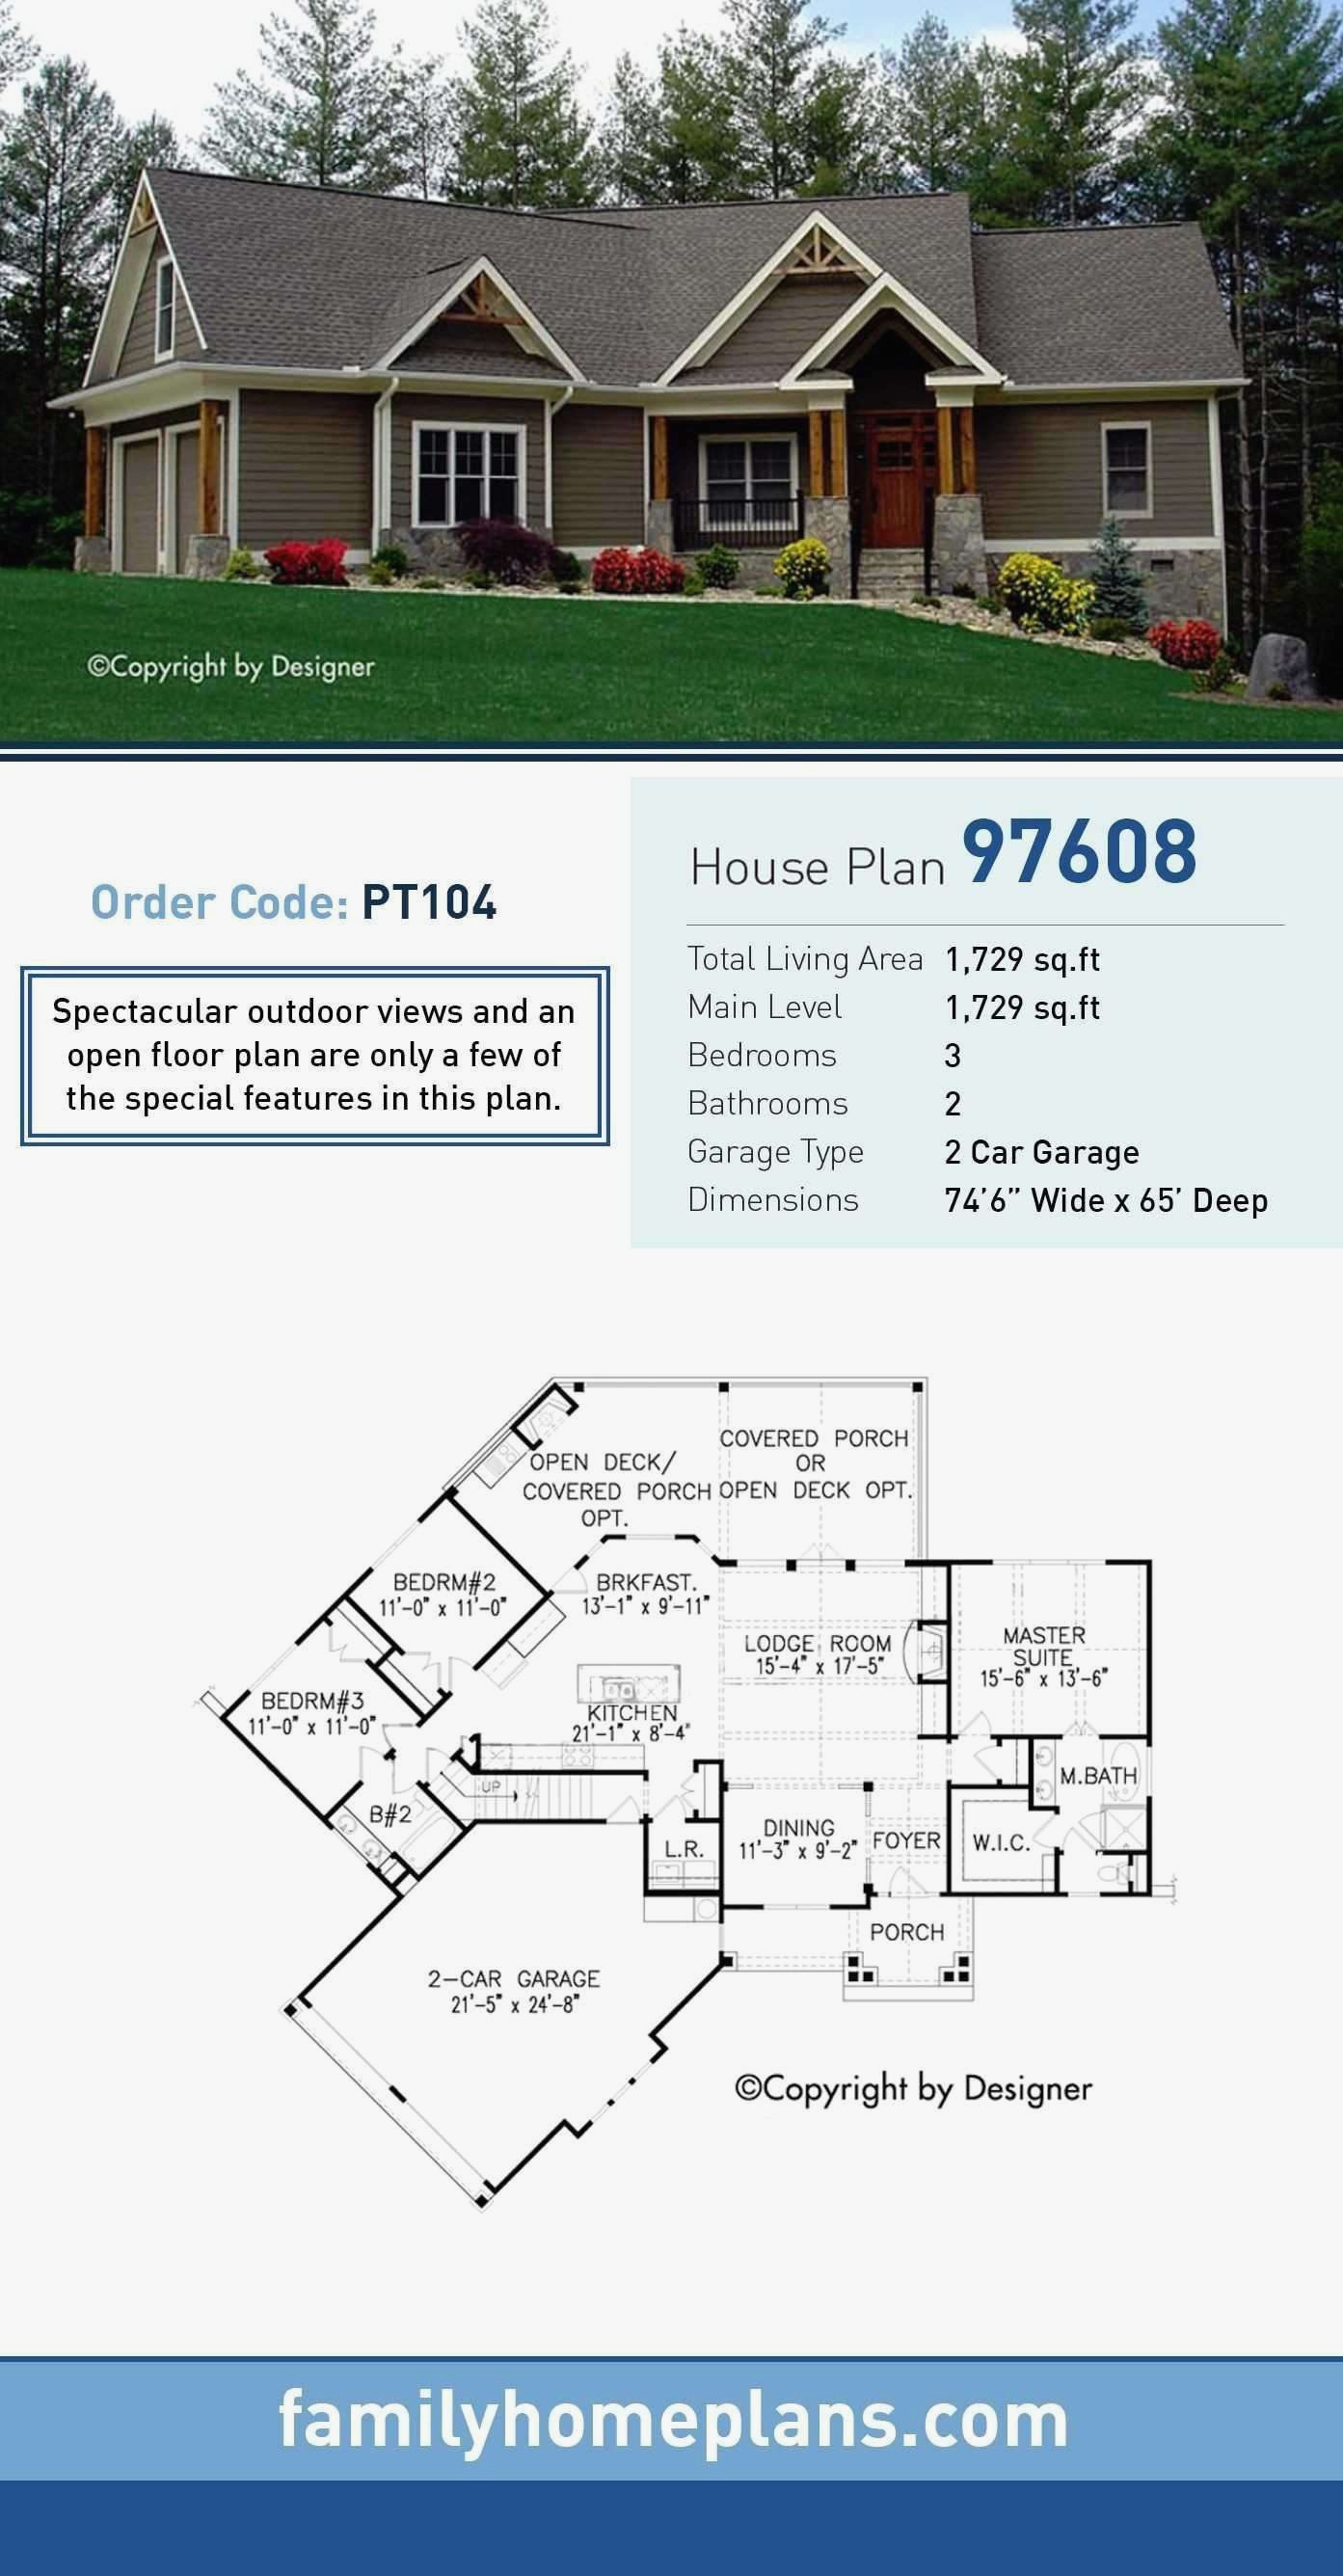 monsterhouse plans best of monster house plans ideal a home plan new home of monsterhouse plans